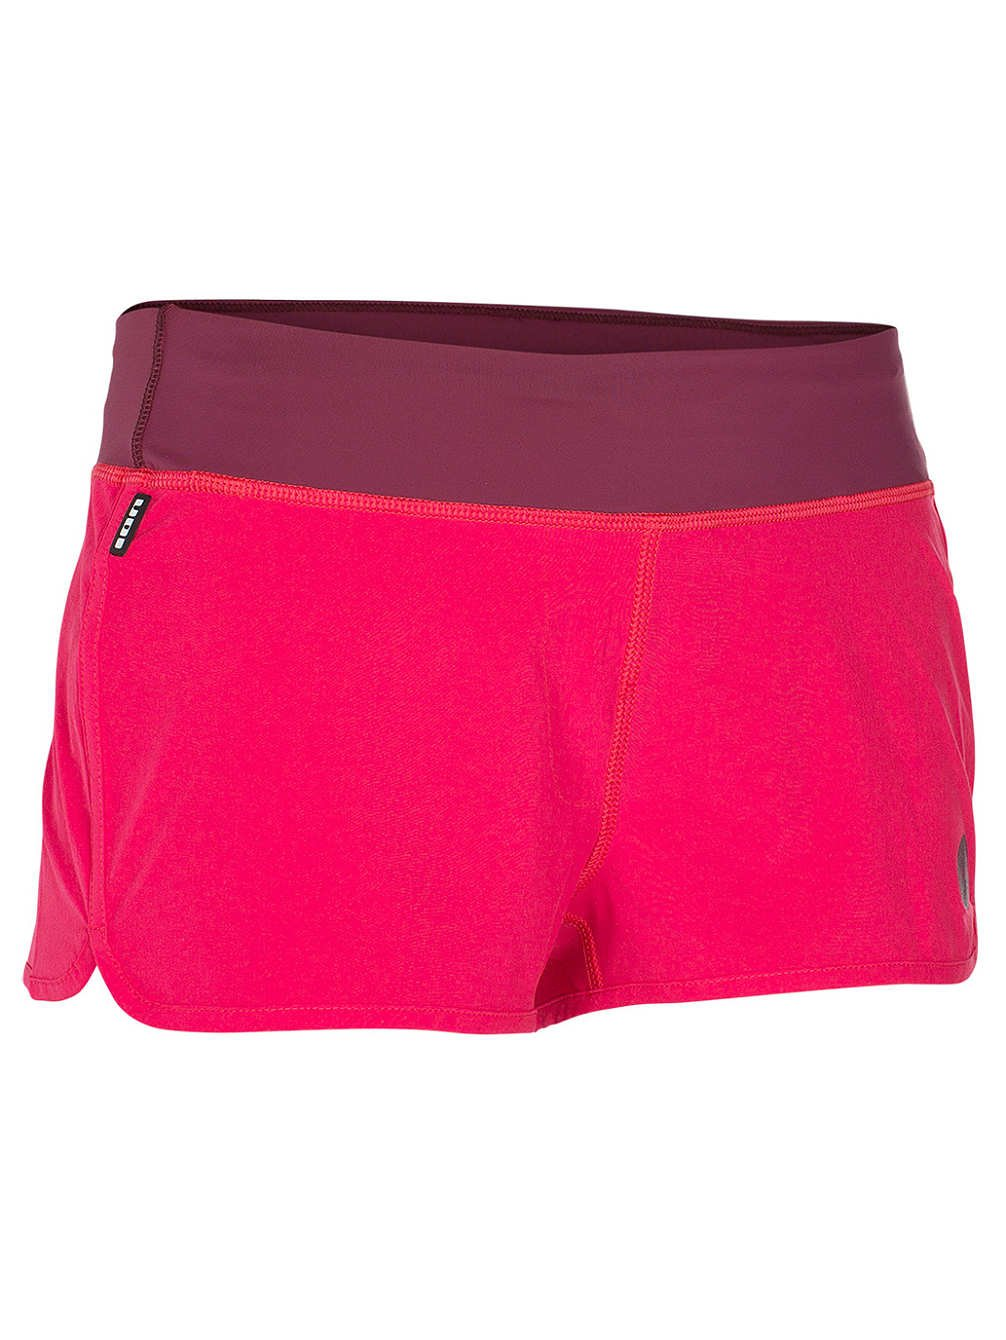 ION Girls Short Chica Schwarz